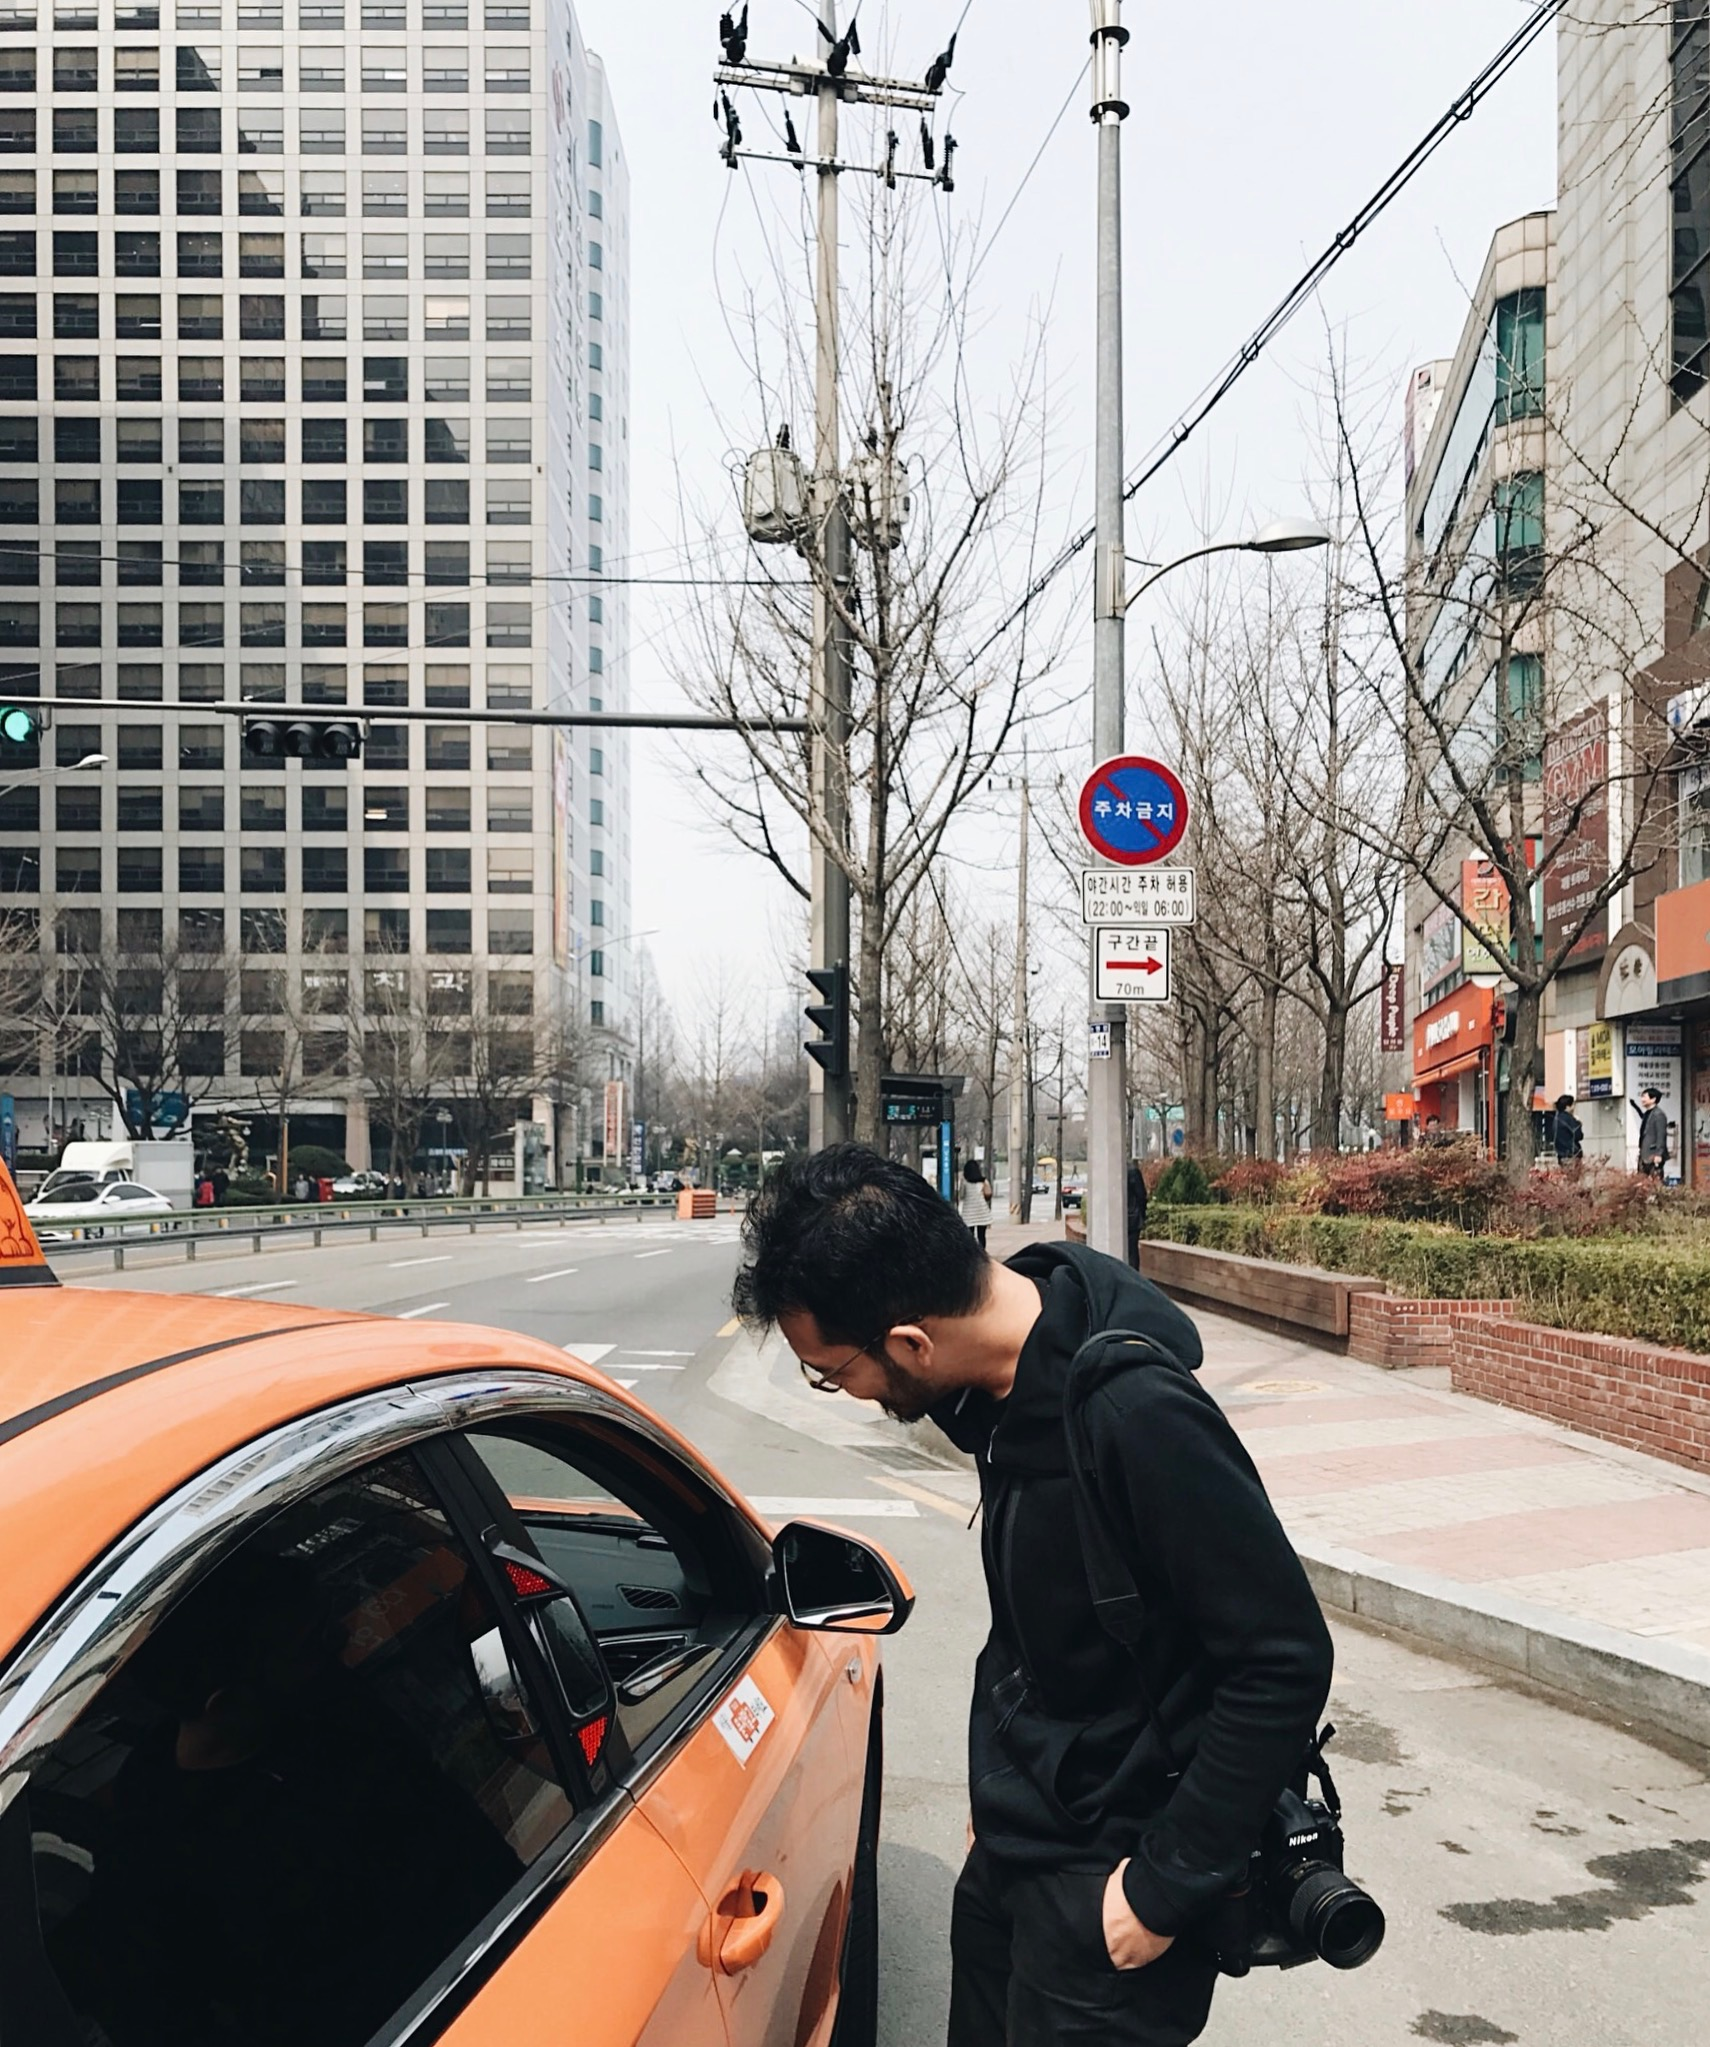 Regular taxi in Seoul, colored in orange. It took us around 5 minutes before the driver would agree to take us.